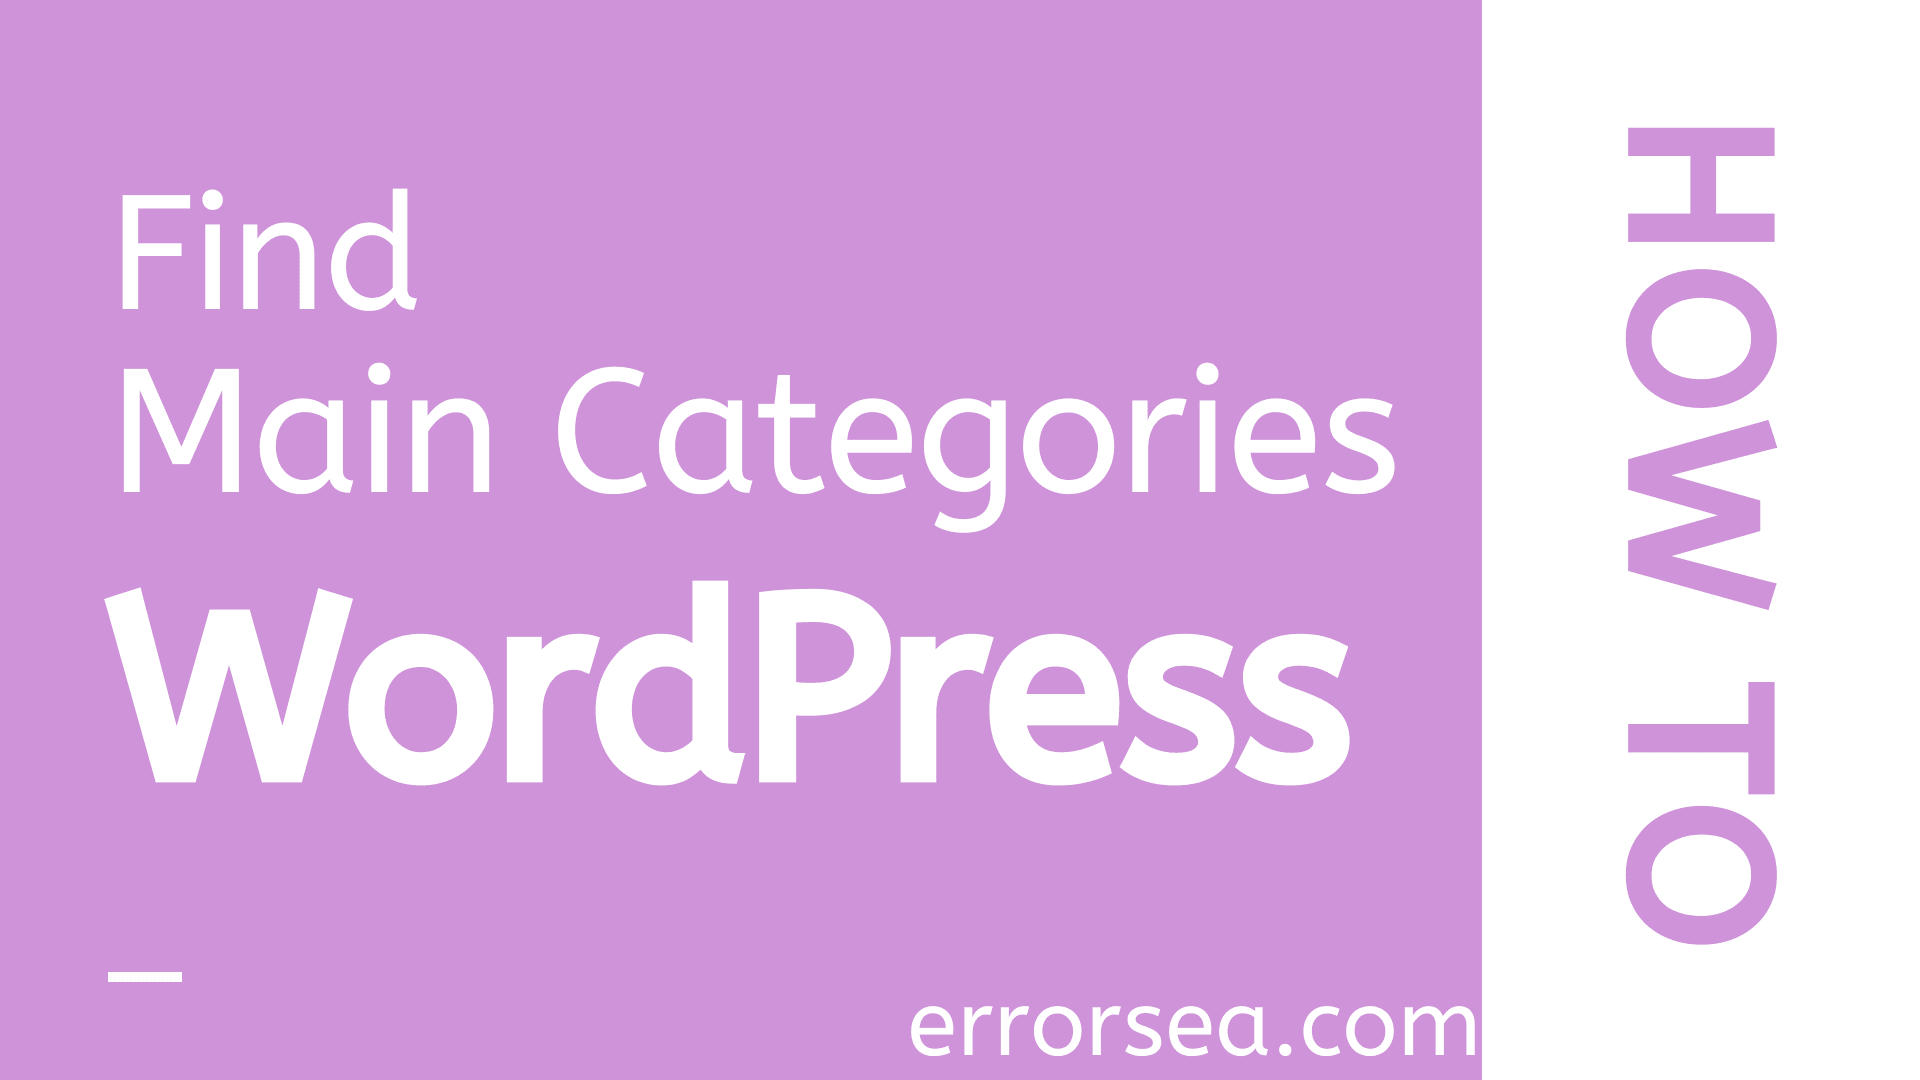 How to List Only Parent Categories in WordPress